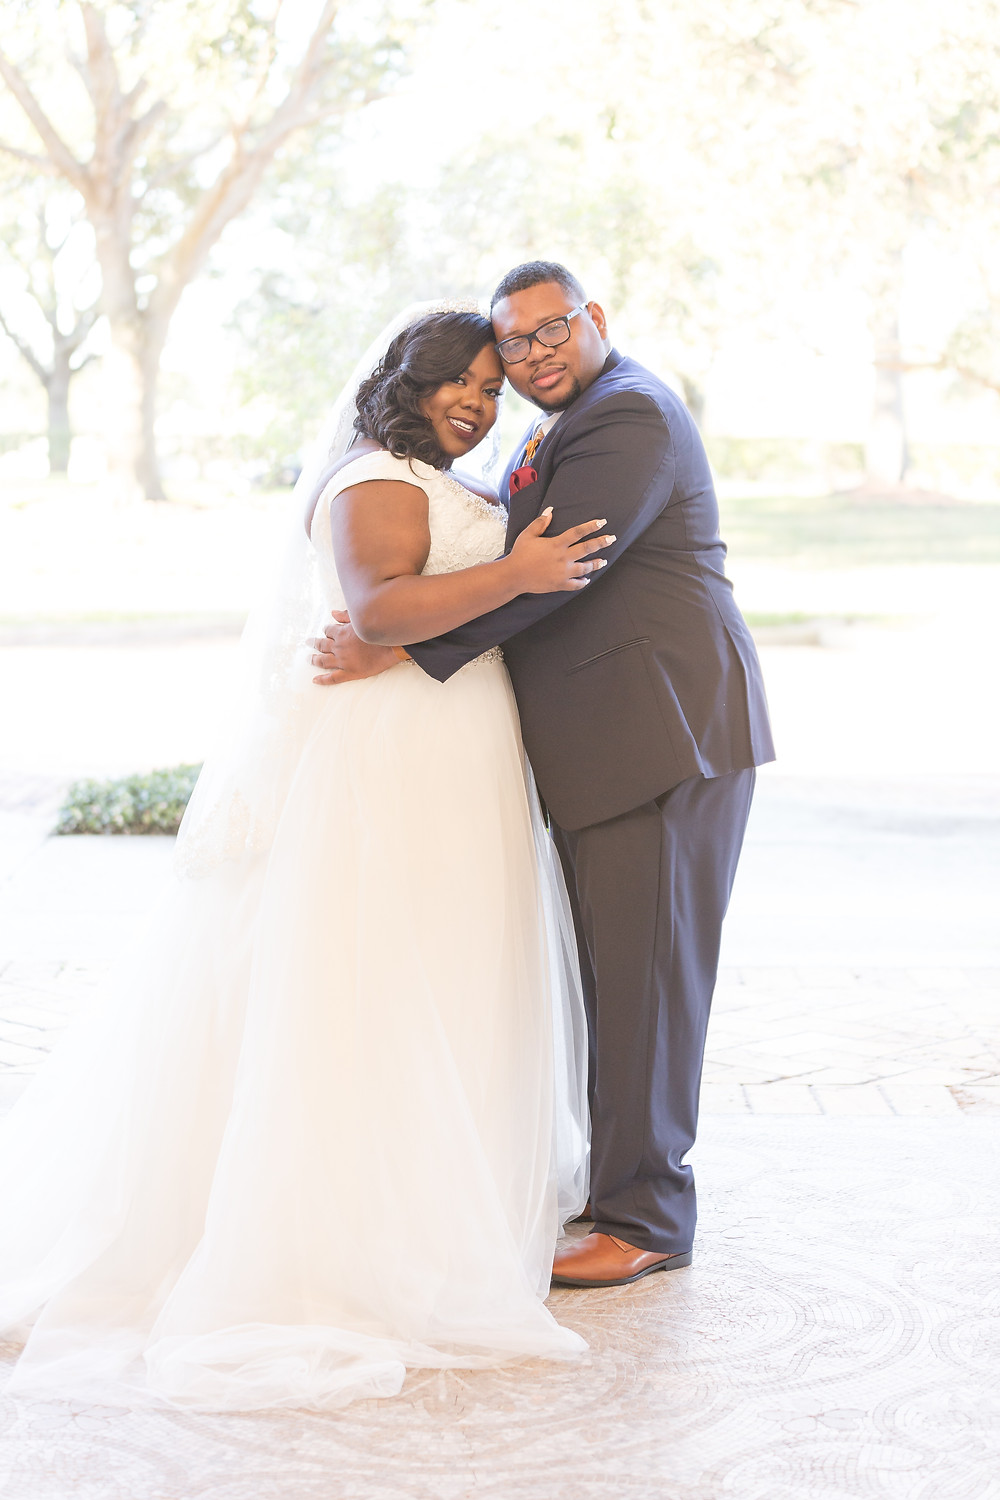 Orlando Wedding Photographer | Orlando Wedding Videographer